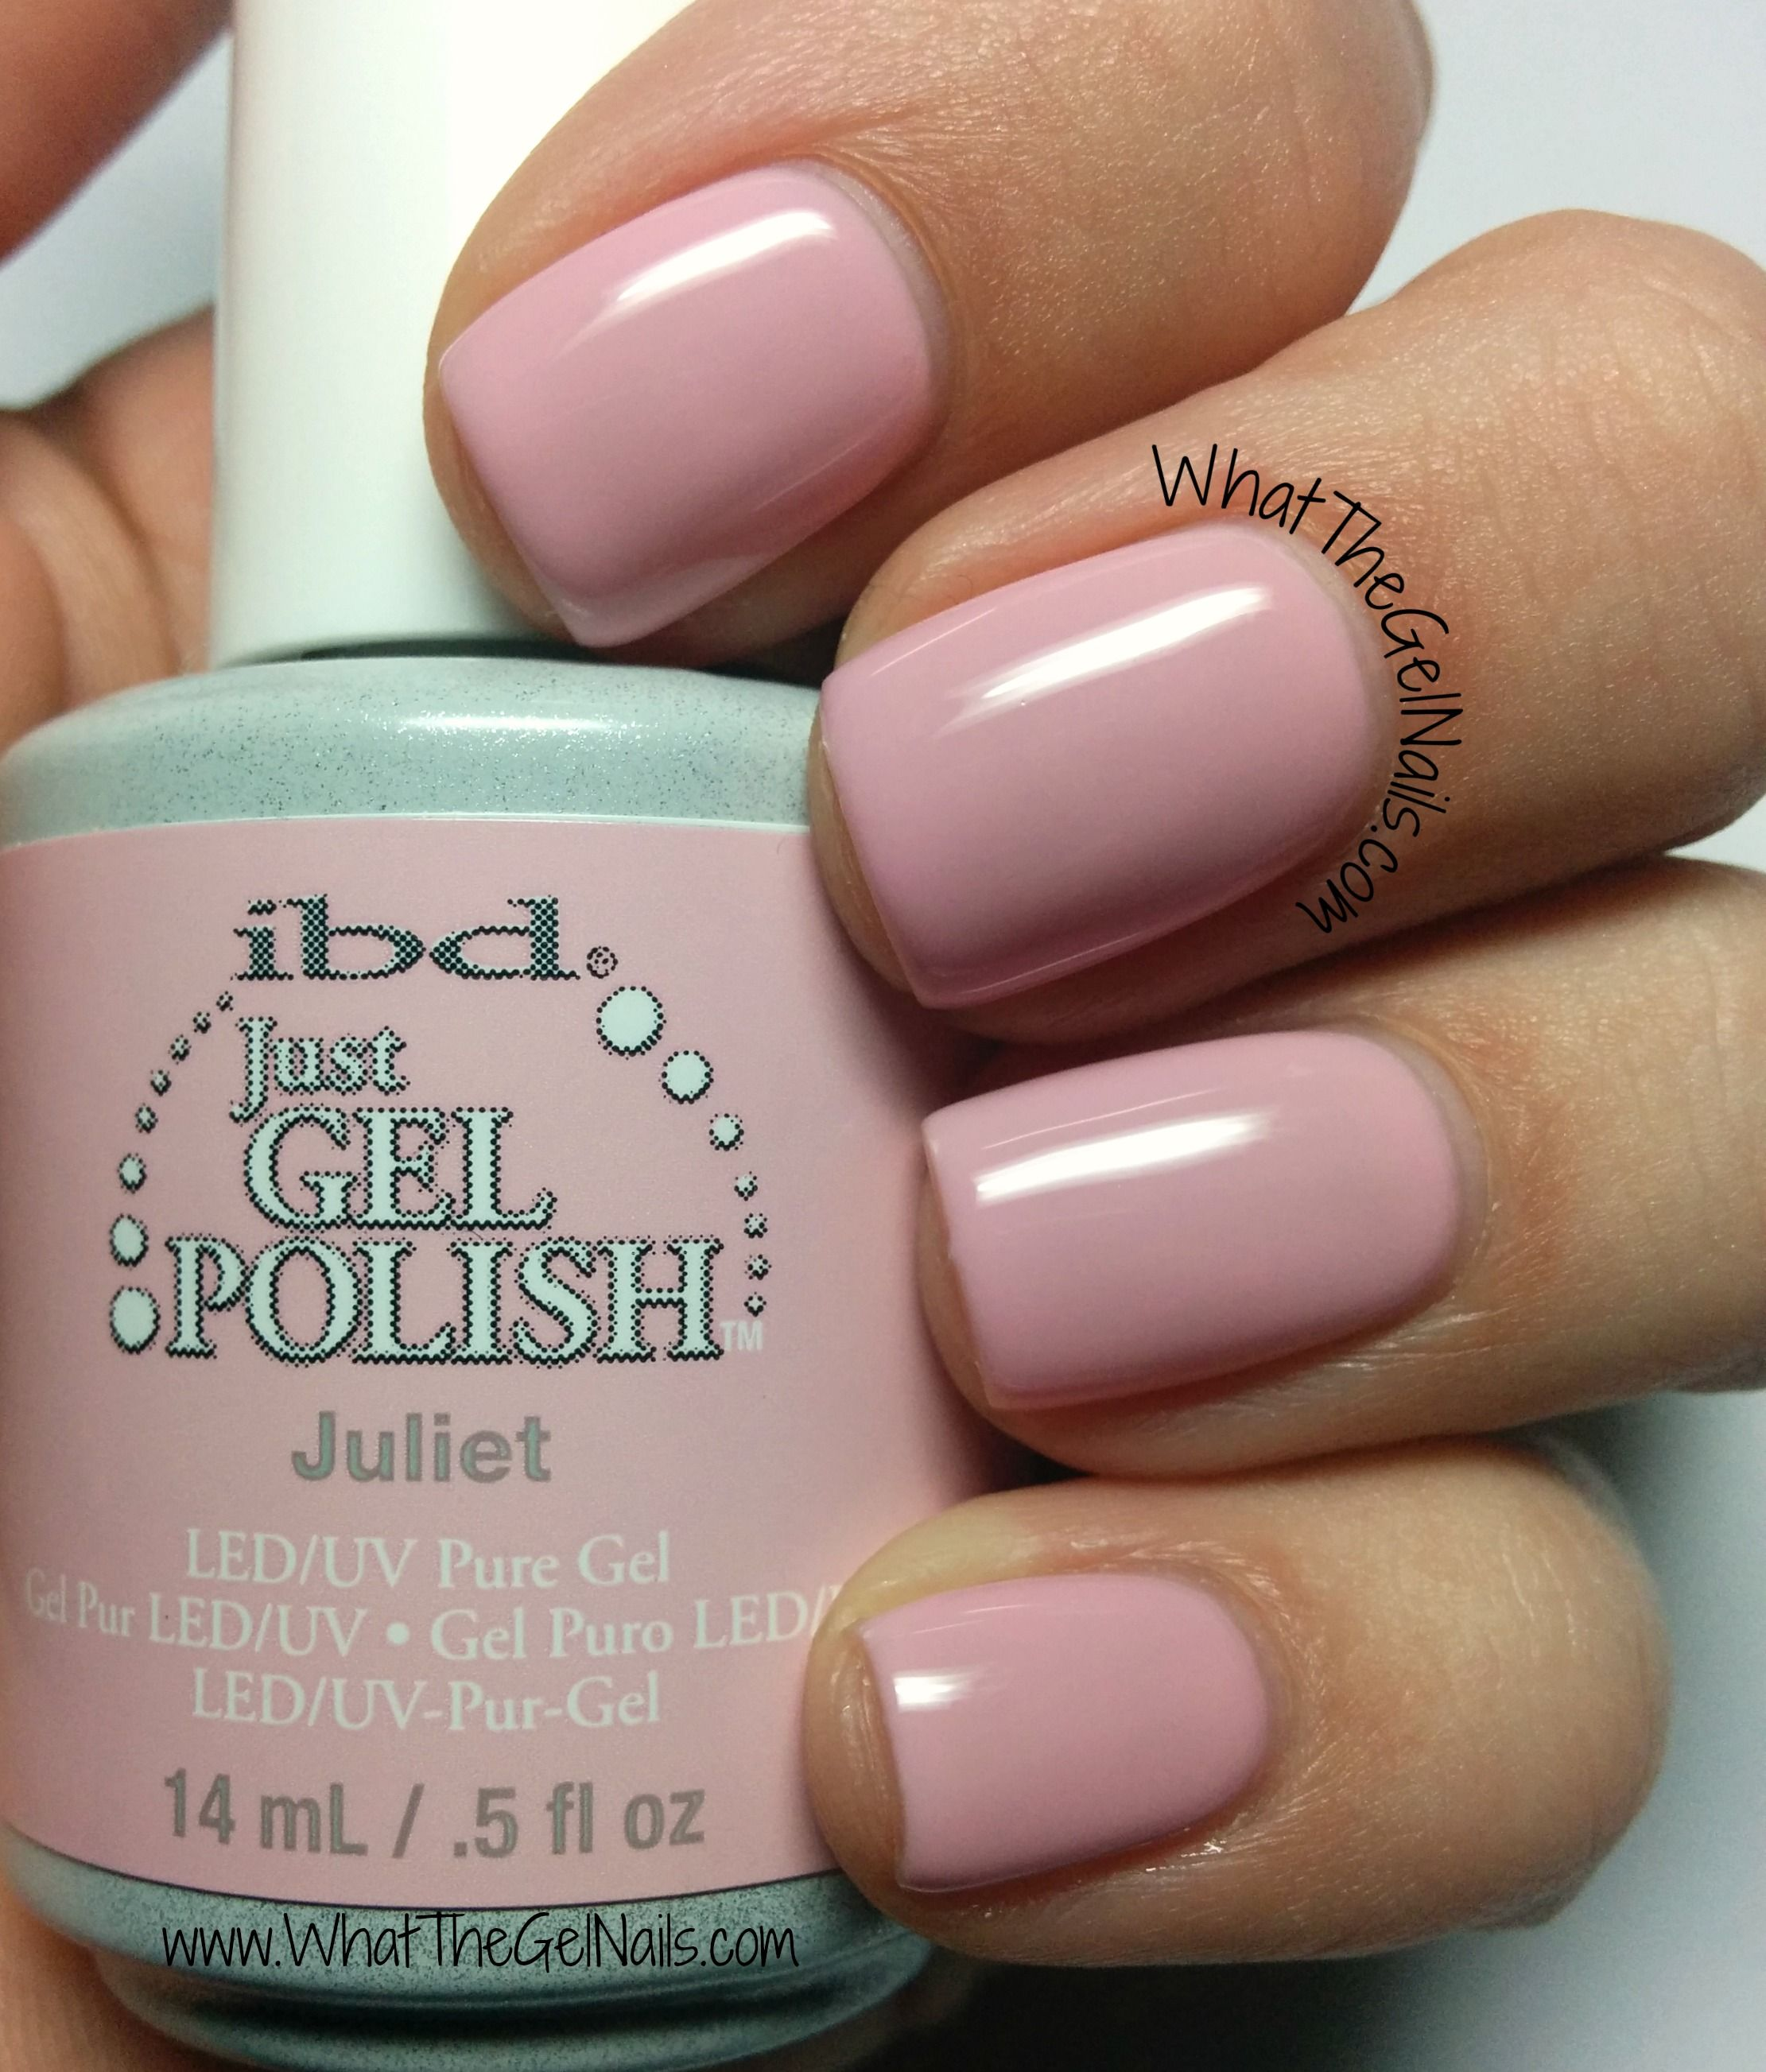 ibd juliet plus more springy gel polish colors. | ibd just gel